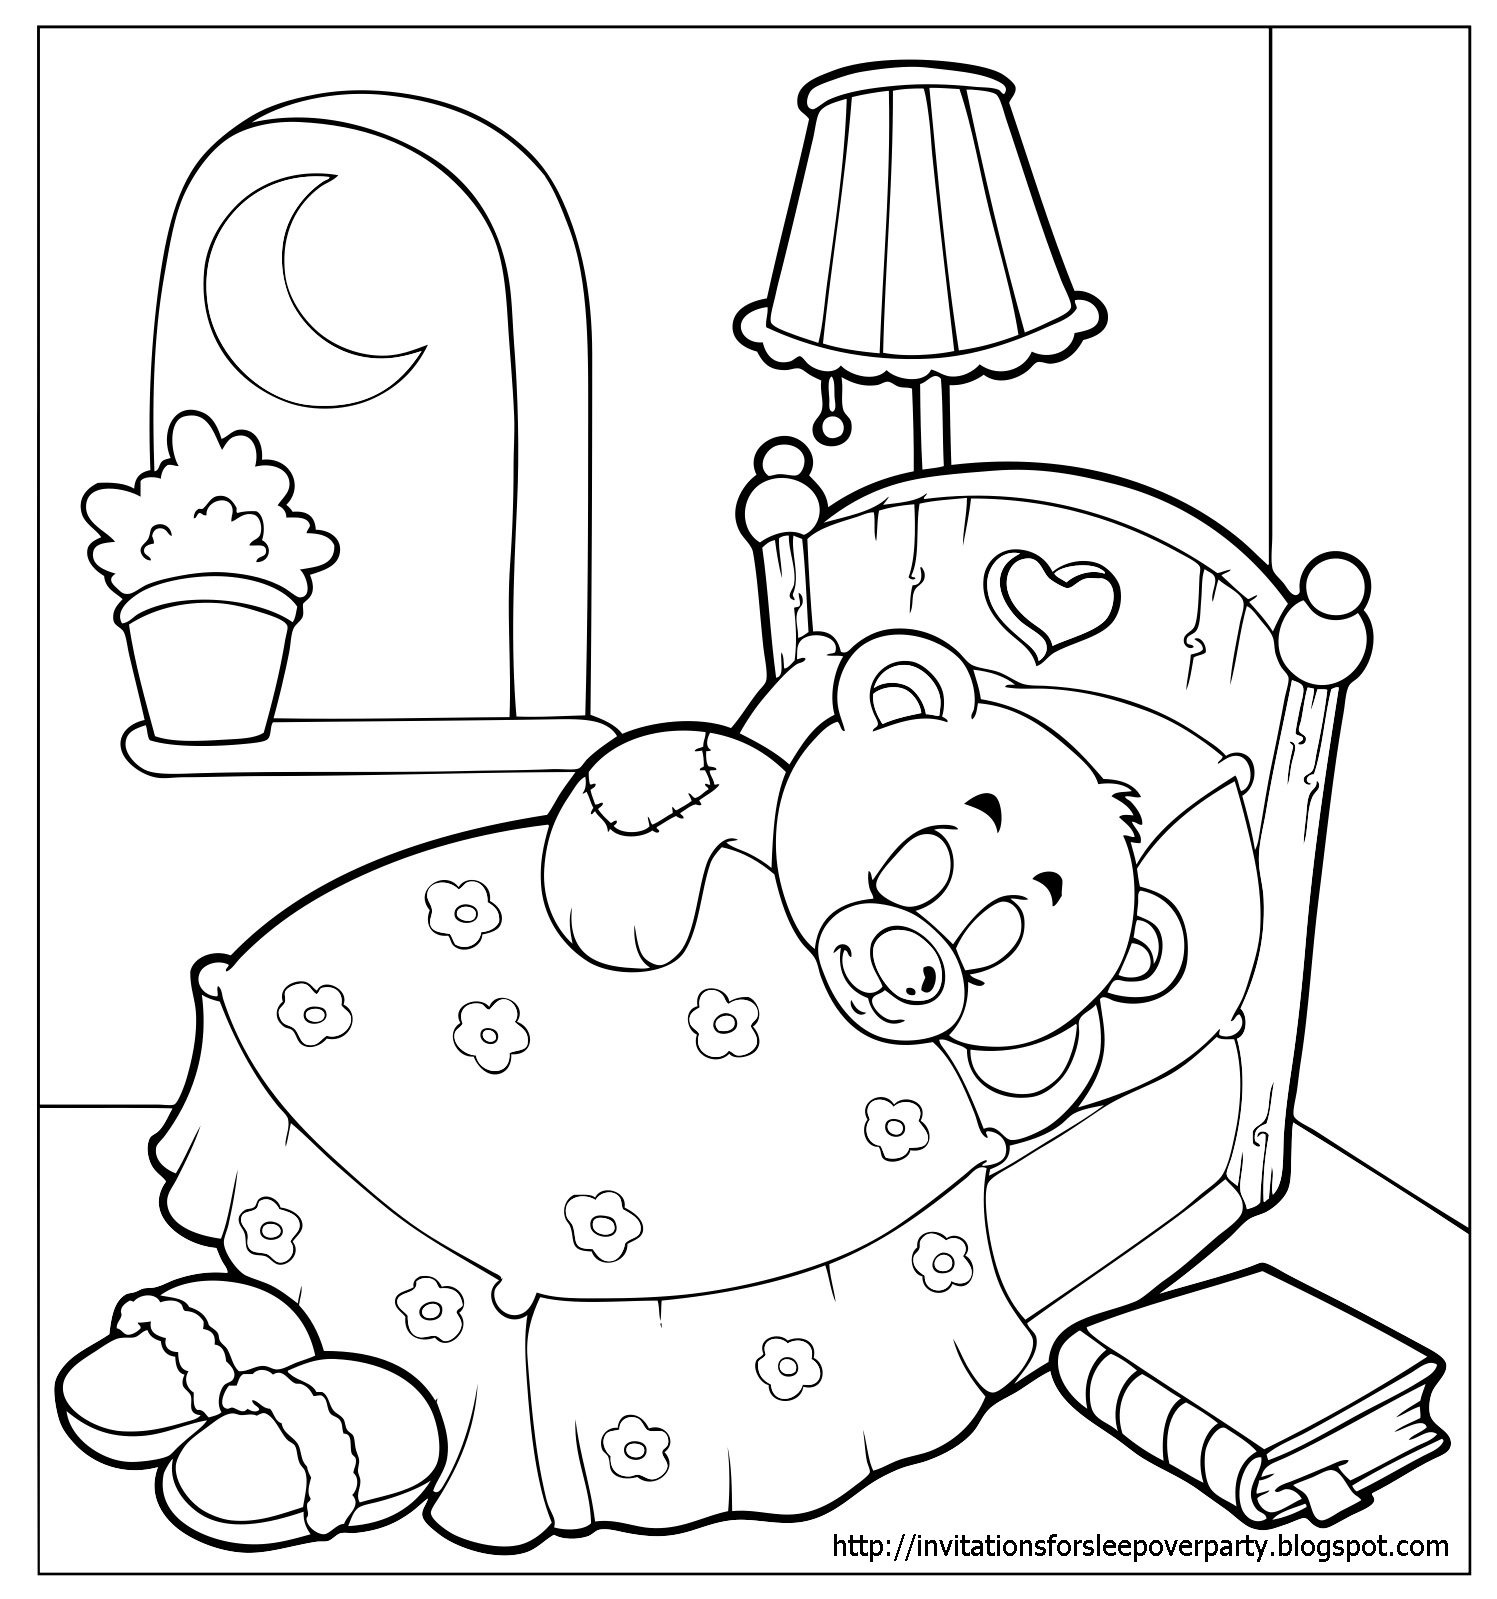 Invitations for sleepover party for Party coloring pages